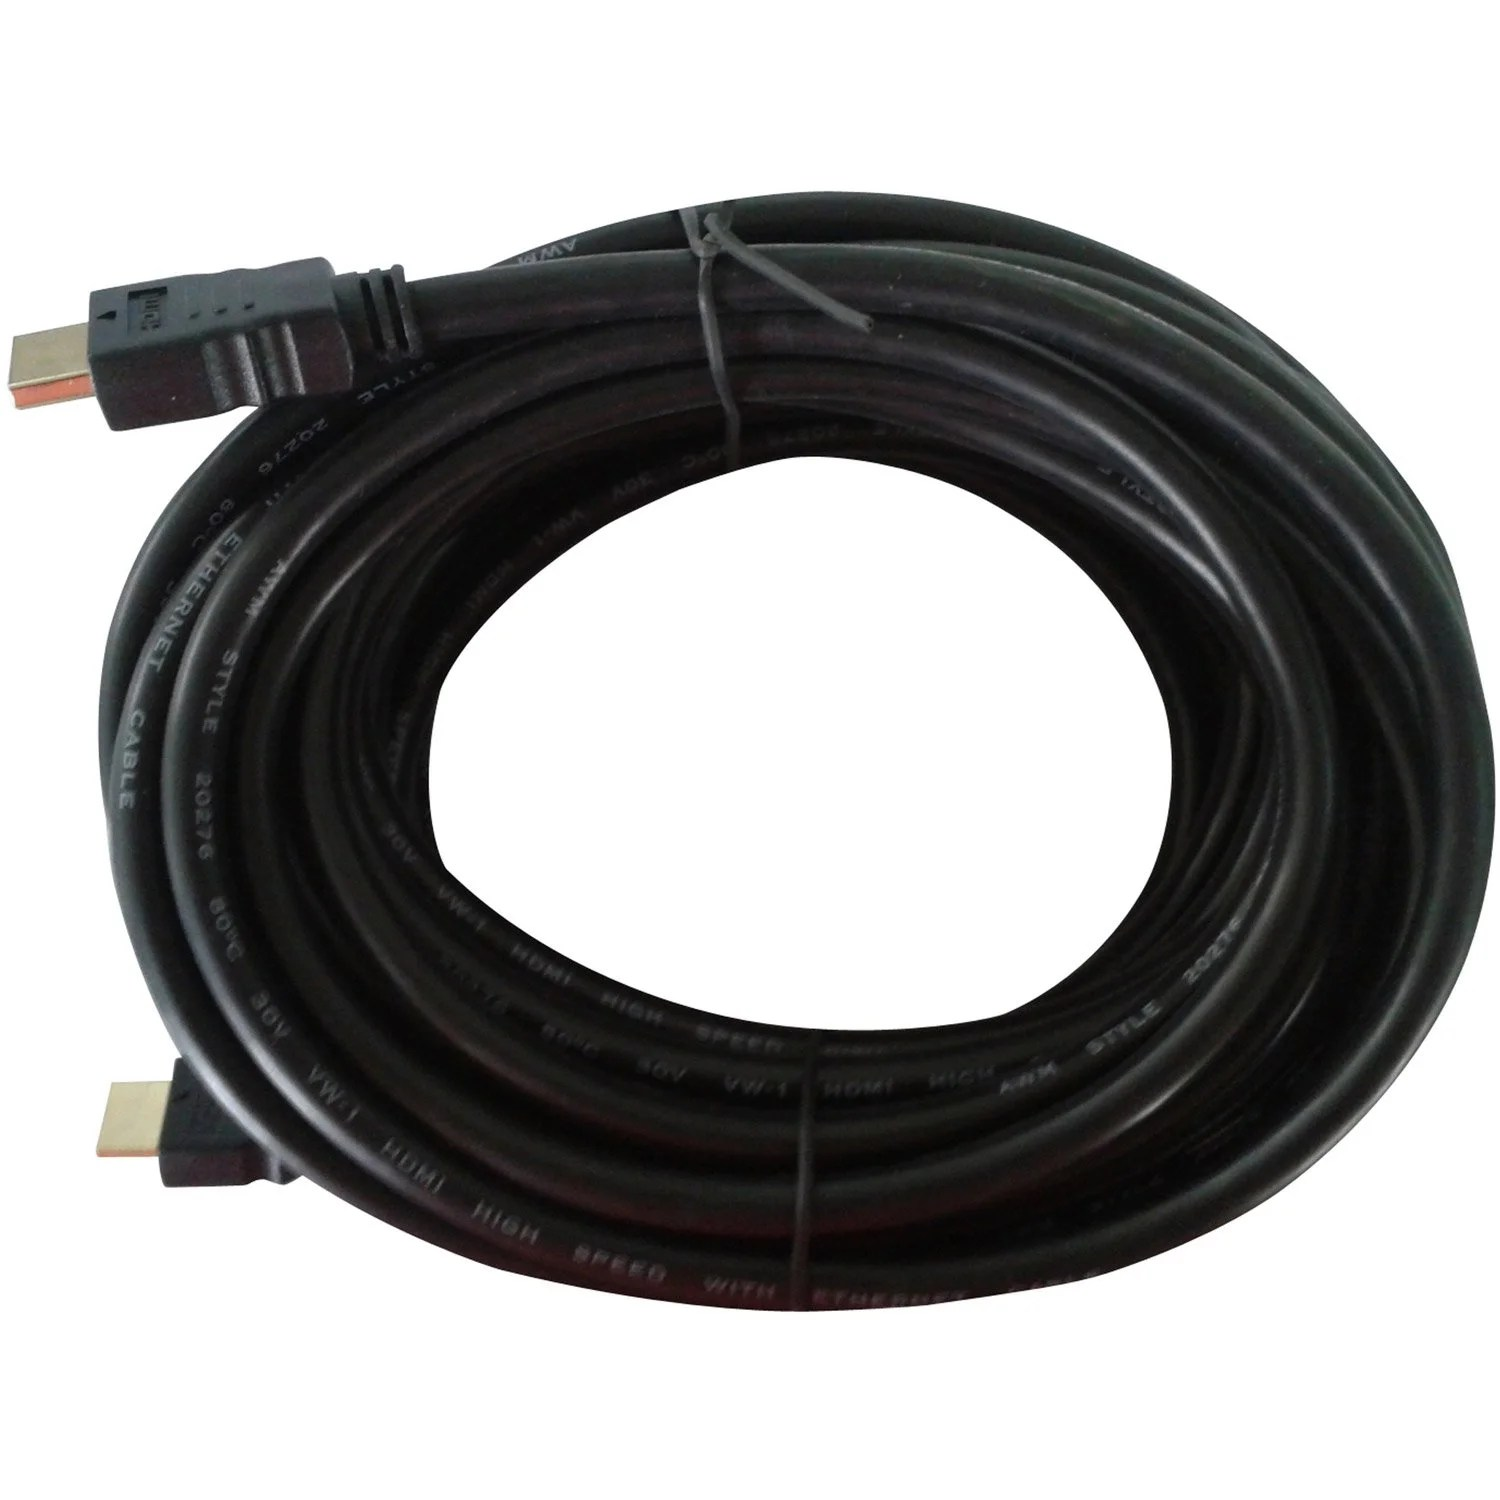 Cable Antenne Leroy Merlin Câble Hdmi High Speed Mâle Mâle Evology L 10 M